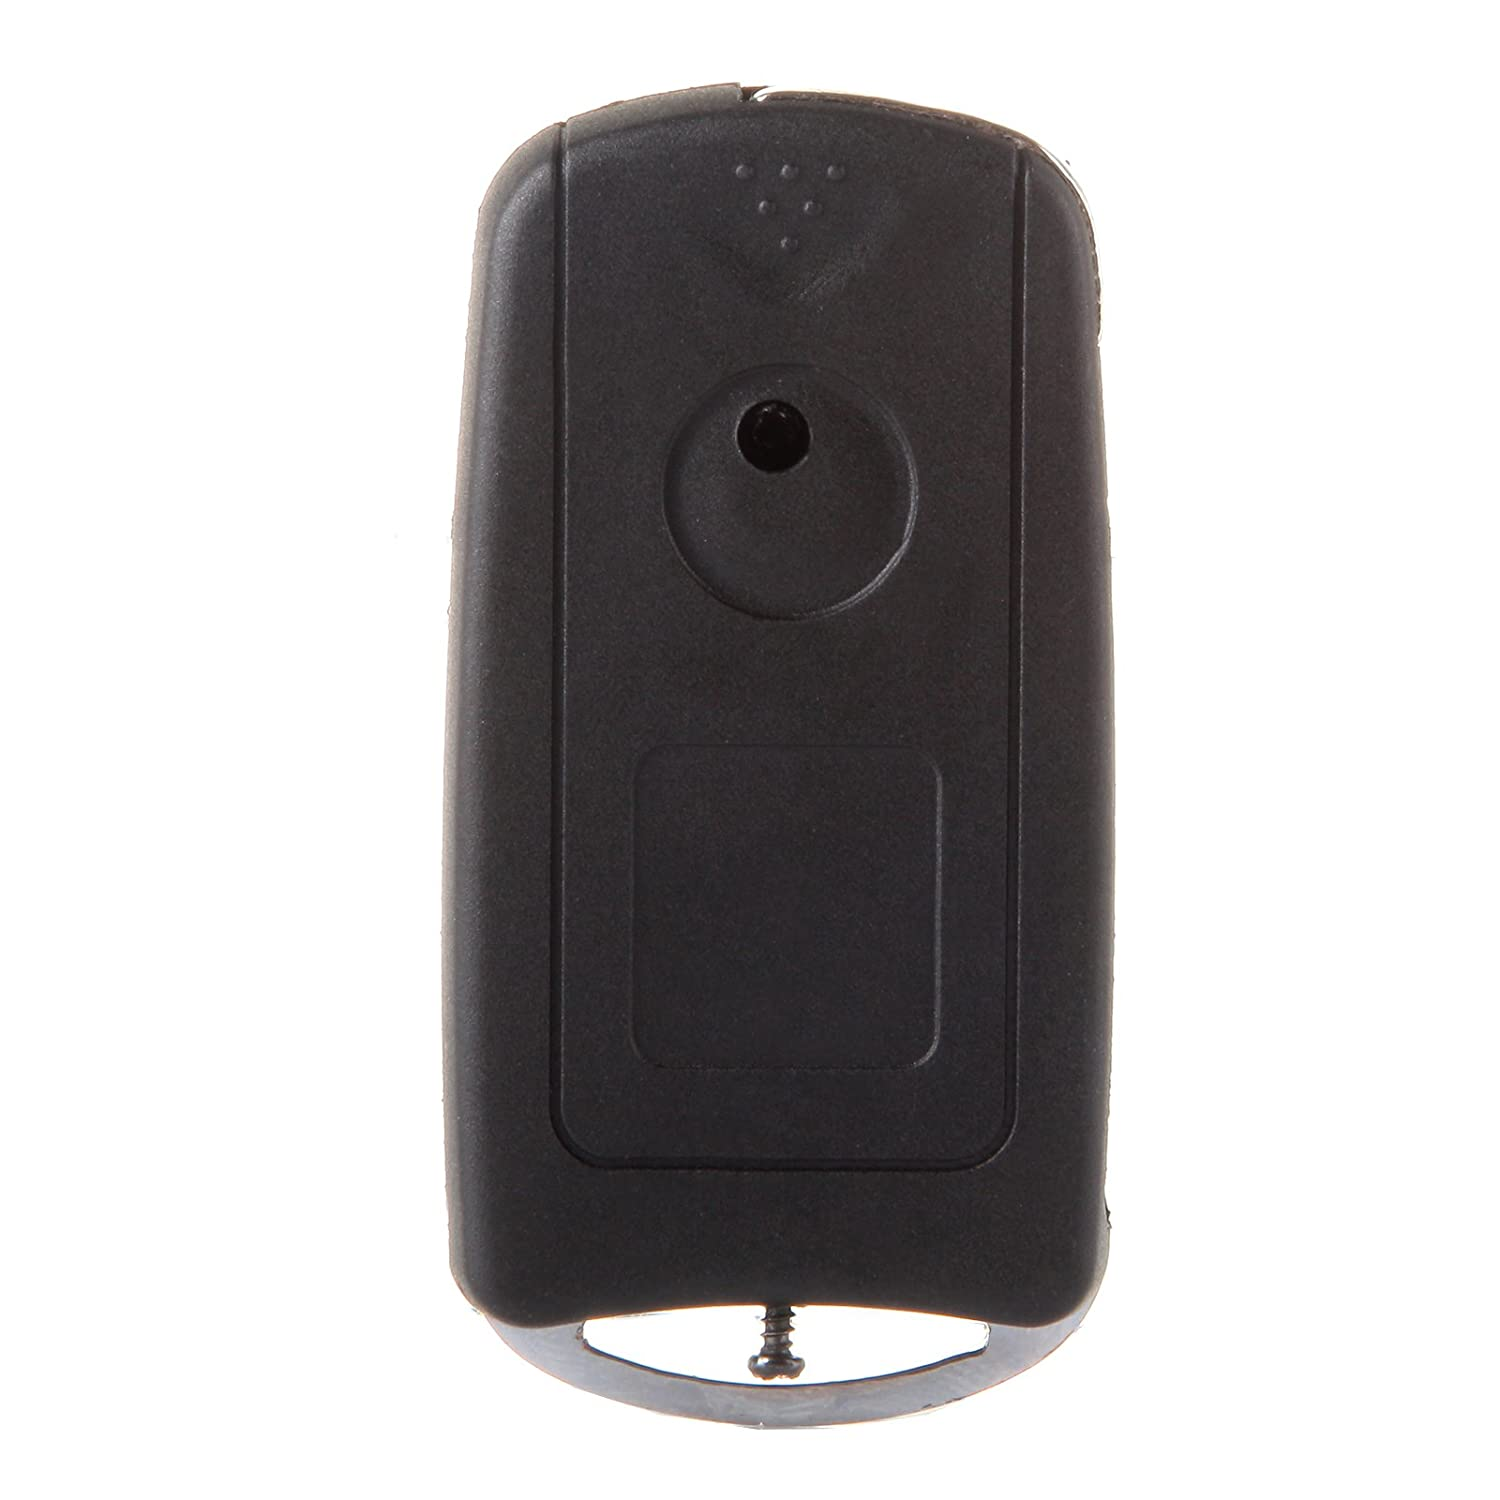 LSAILON Keyless Option Keyless Entry Remote Control Car/ï/¼/ˆonly Case/ï/¼/‰Replacement Compatible with 2008-2012 MITSUBISHI LEFT GROOVE 4 Buttons Keyless Entry Option pack of 1